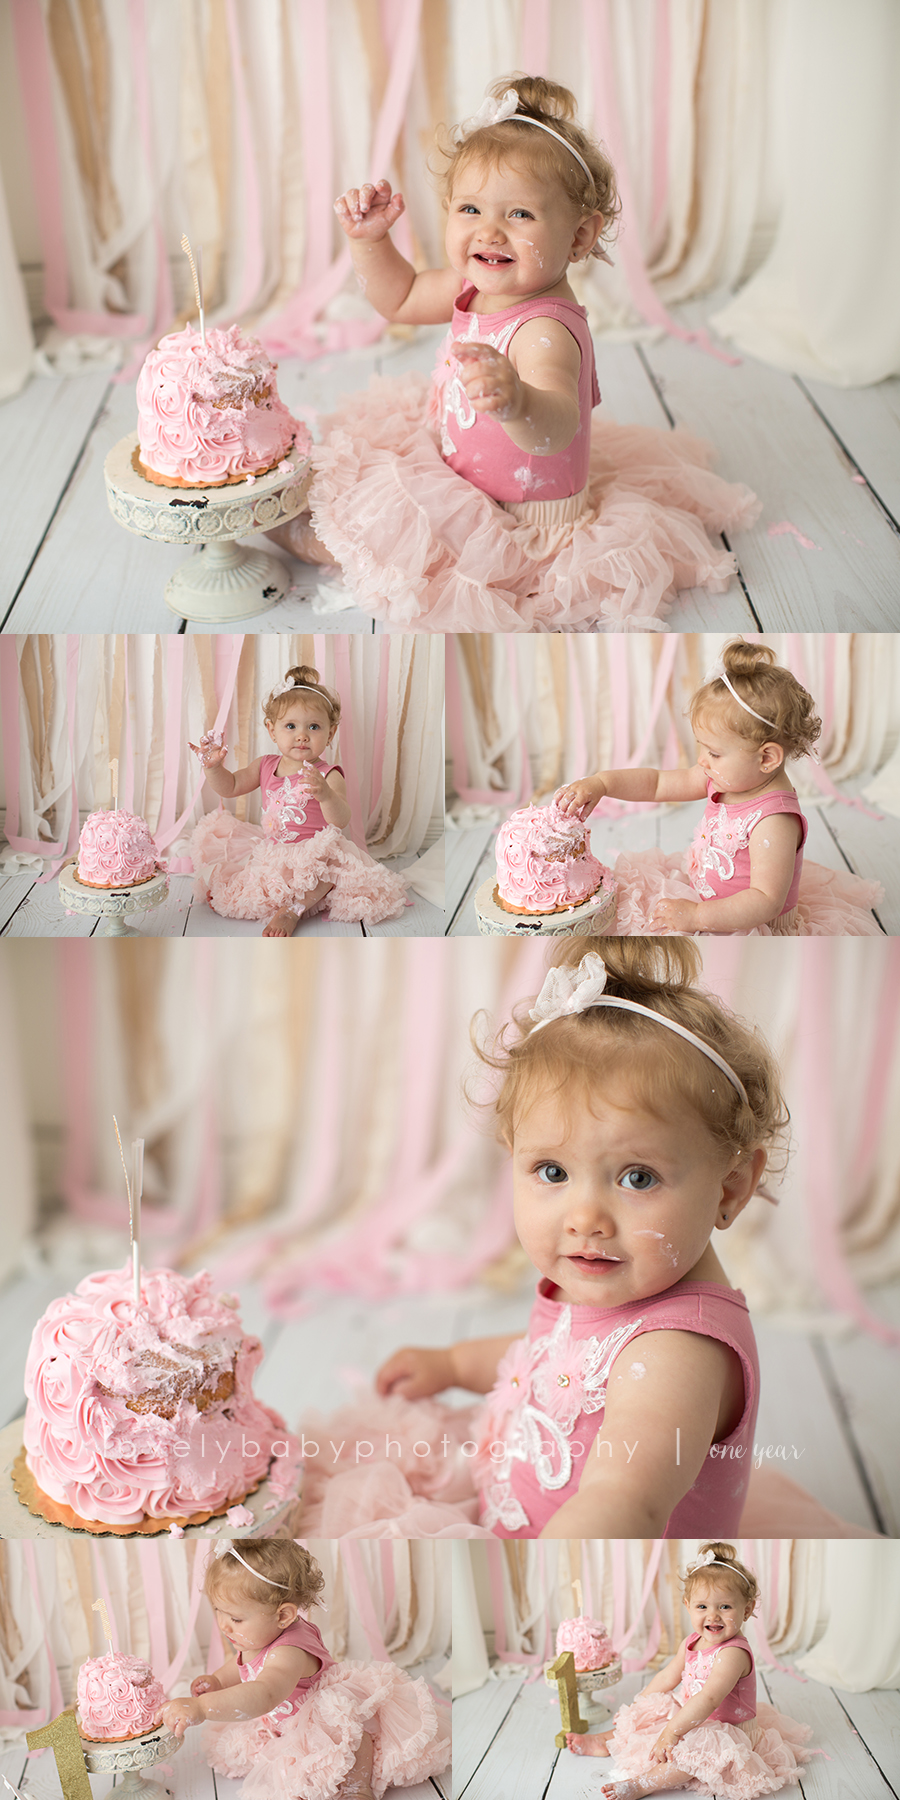 3 san diego cake smash photography.jpg